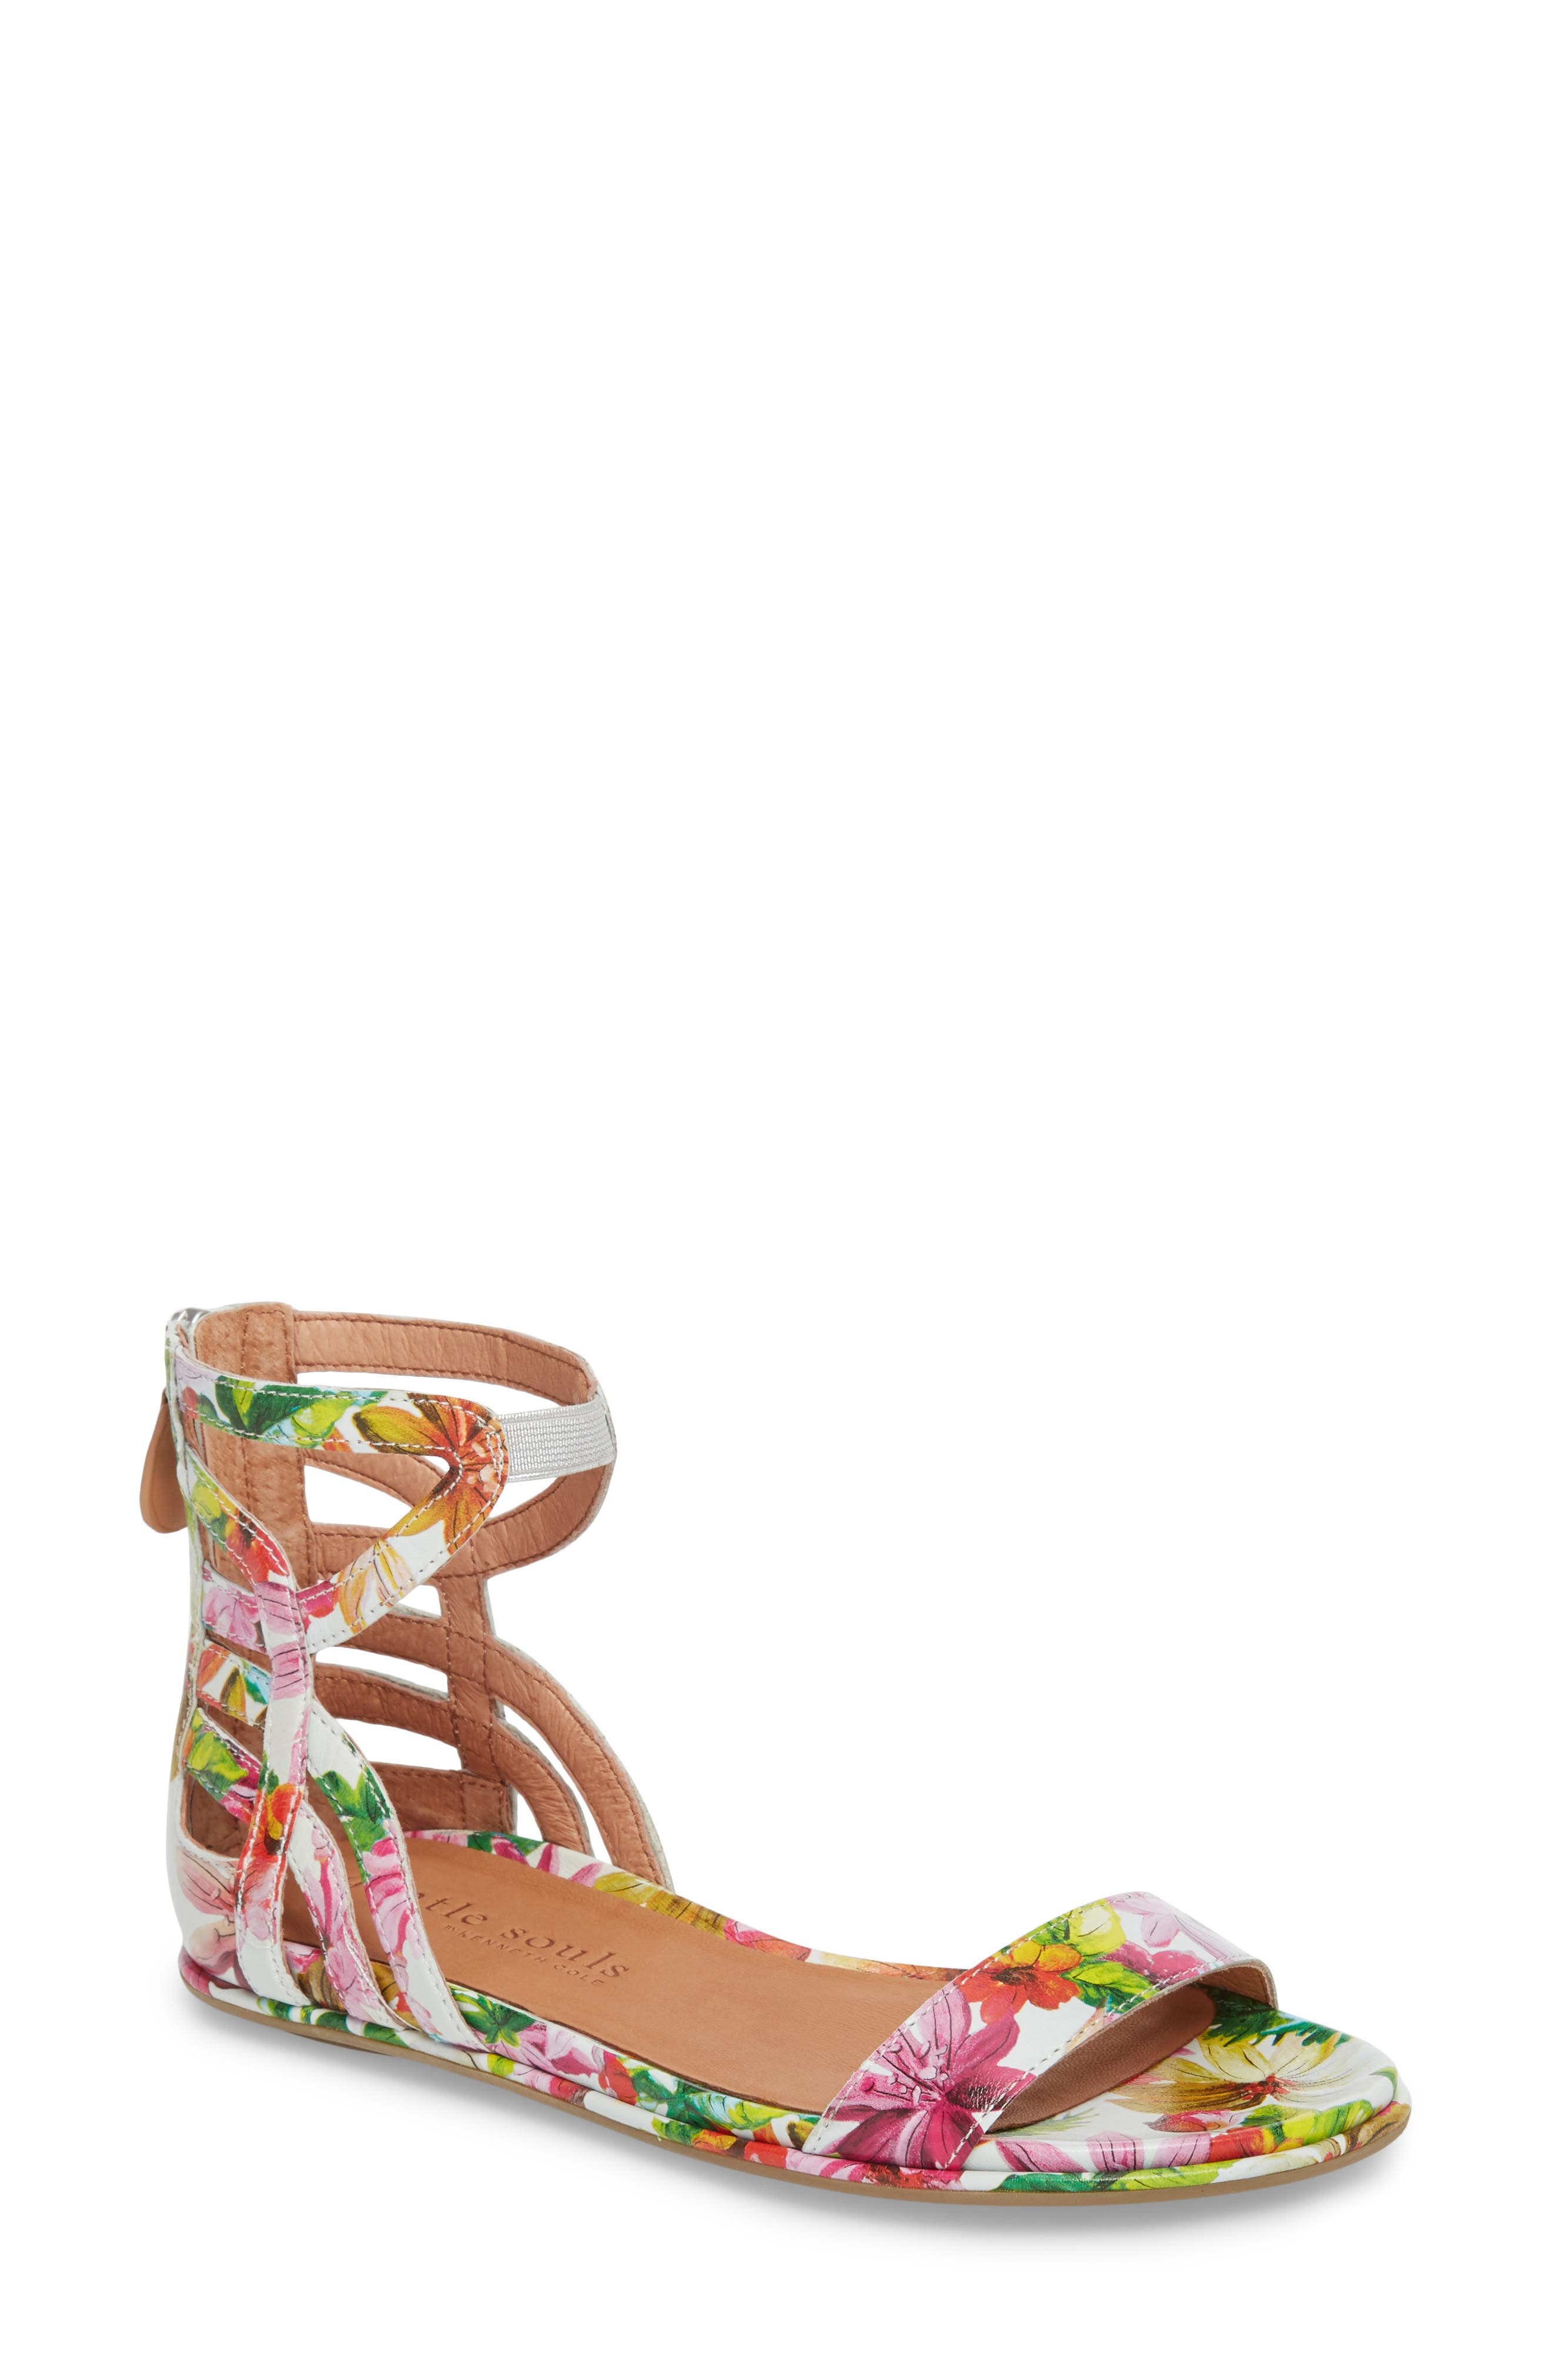 GENTLE SOULS BY KENNETH COLE Larissa Sandal, Main, color, PALM PRINTED LEATHER